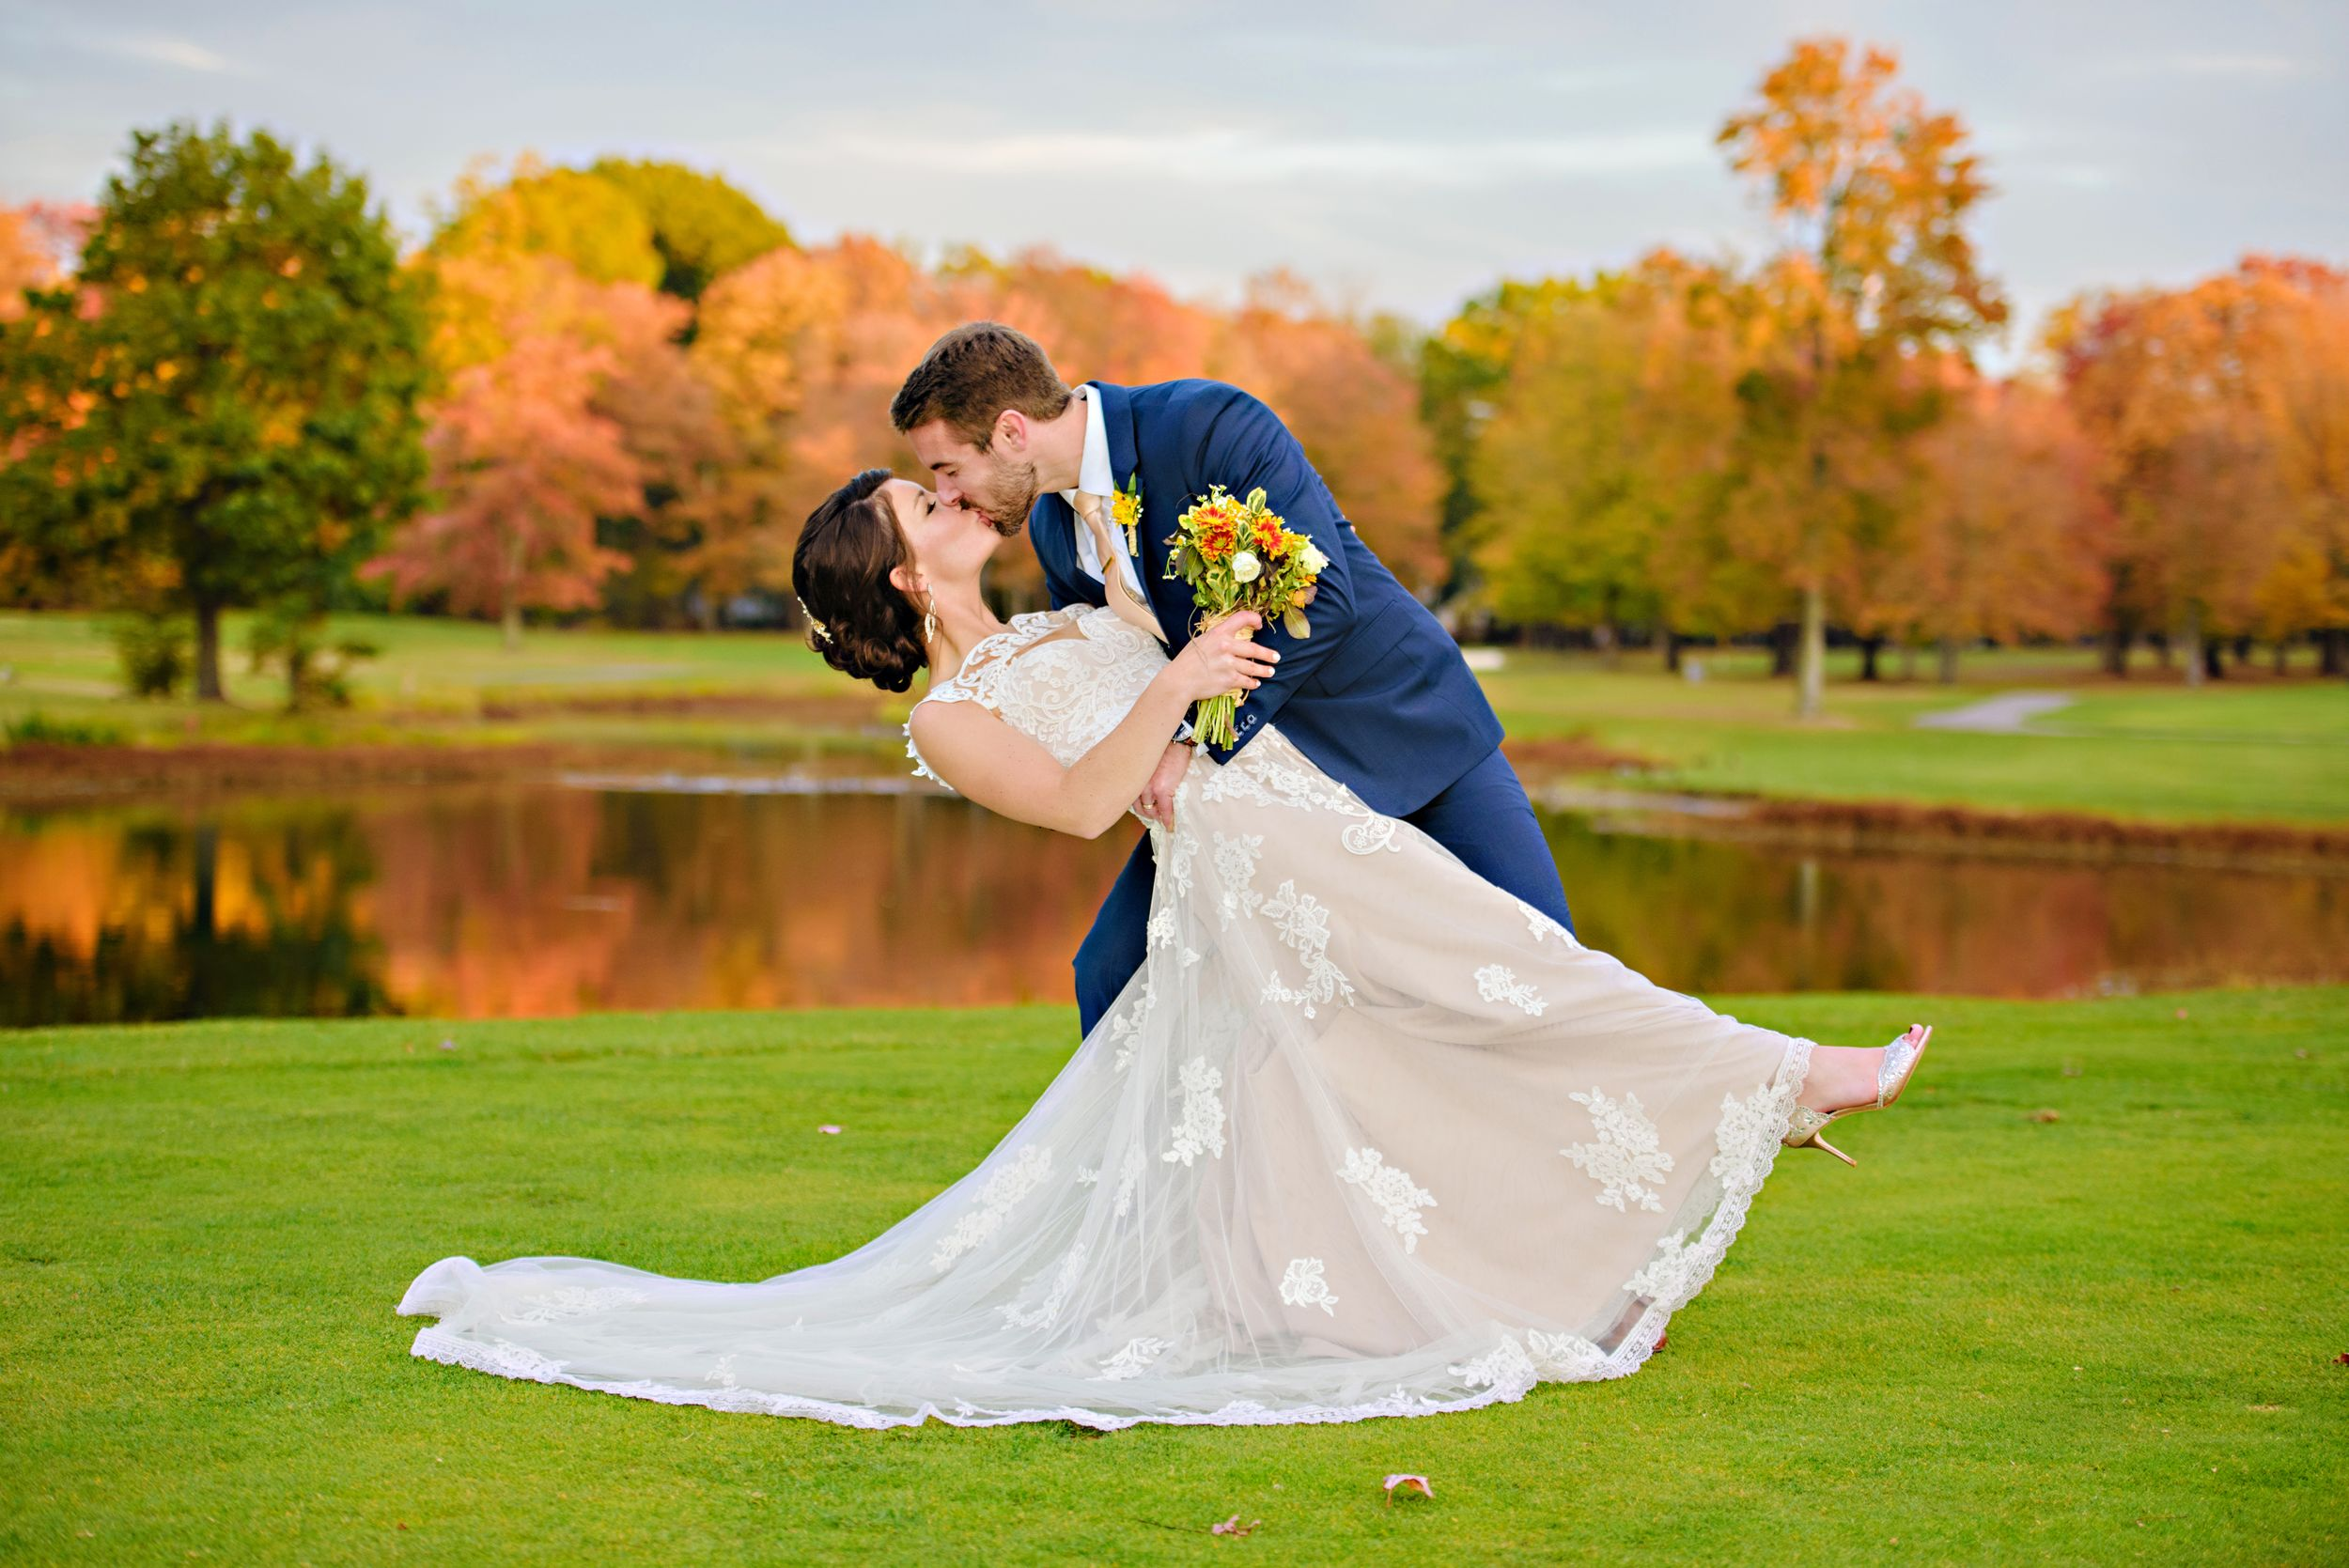 October wedding in Ohio at Tanglewood Country Club